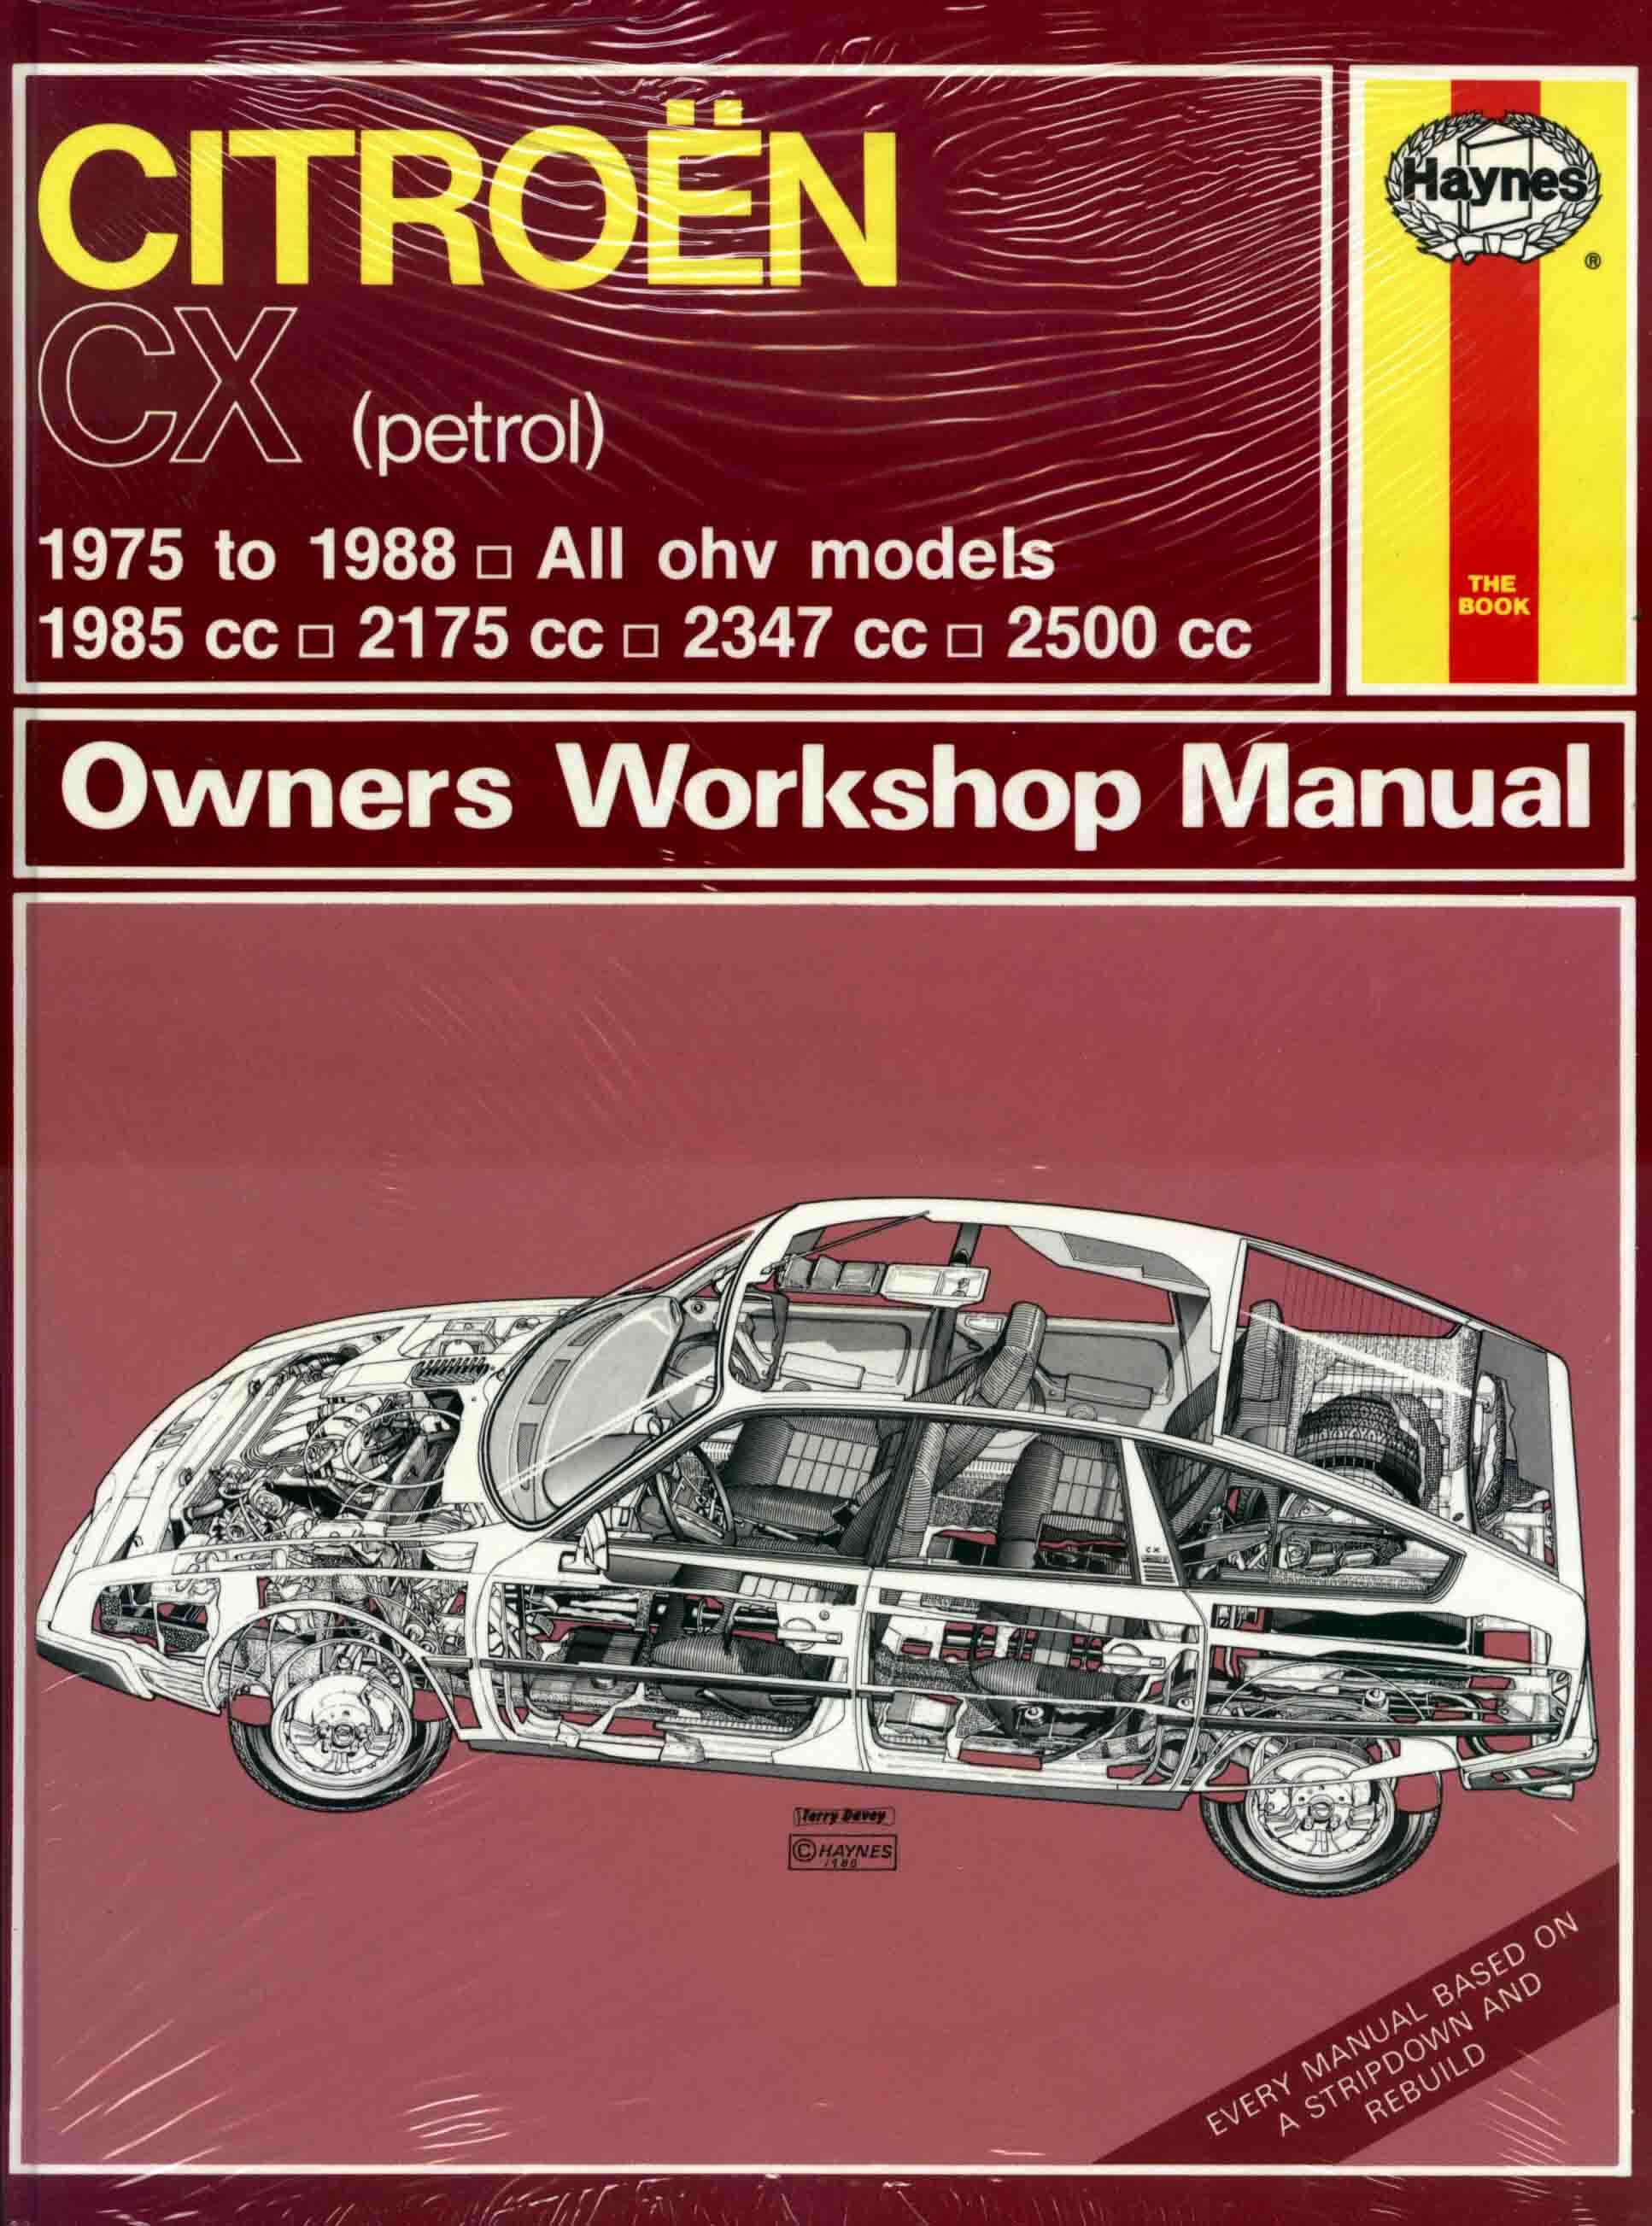 citroen shop service manuals at books4cars com rh books4cars com Vehicle Repair Manuals Vehicle Repair Manuals